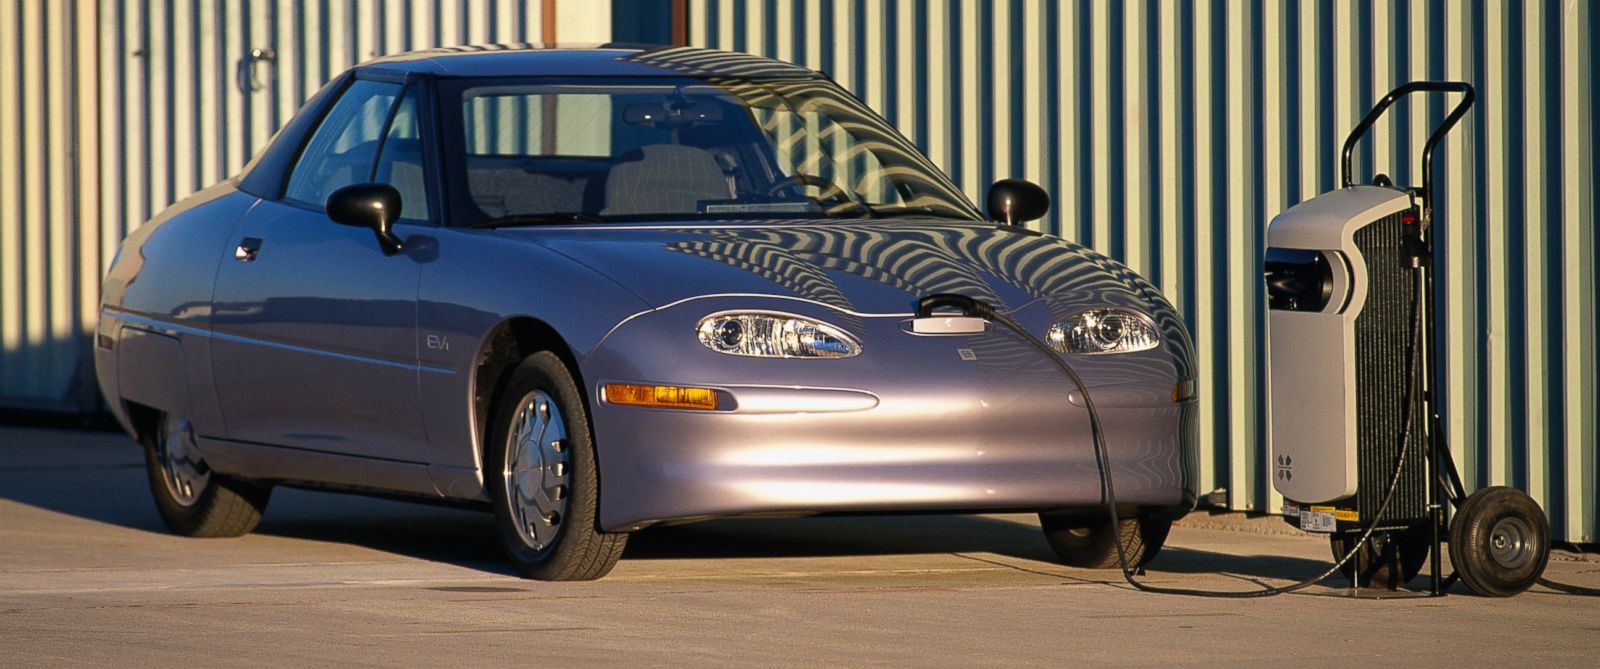 PHOTO: Silver Saturn EV-1 Electric Car on at a charging station is seen in this 1997 file photo.